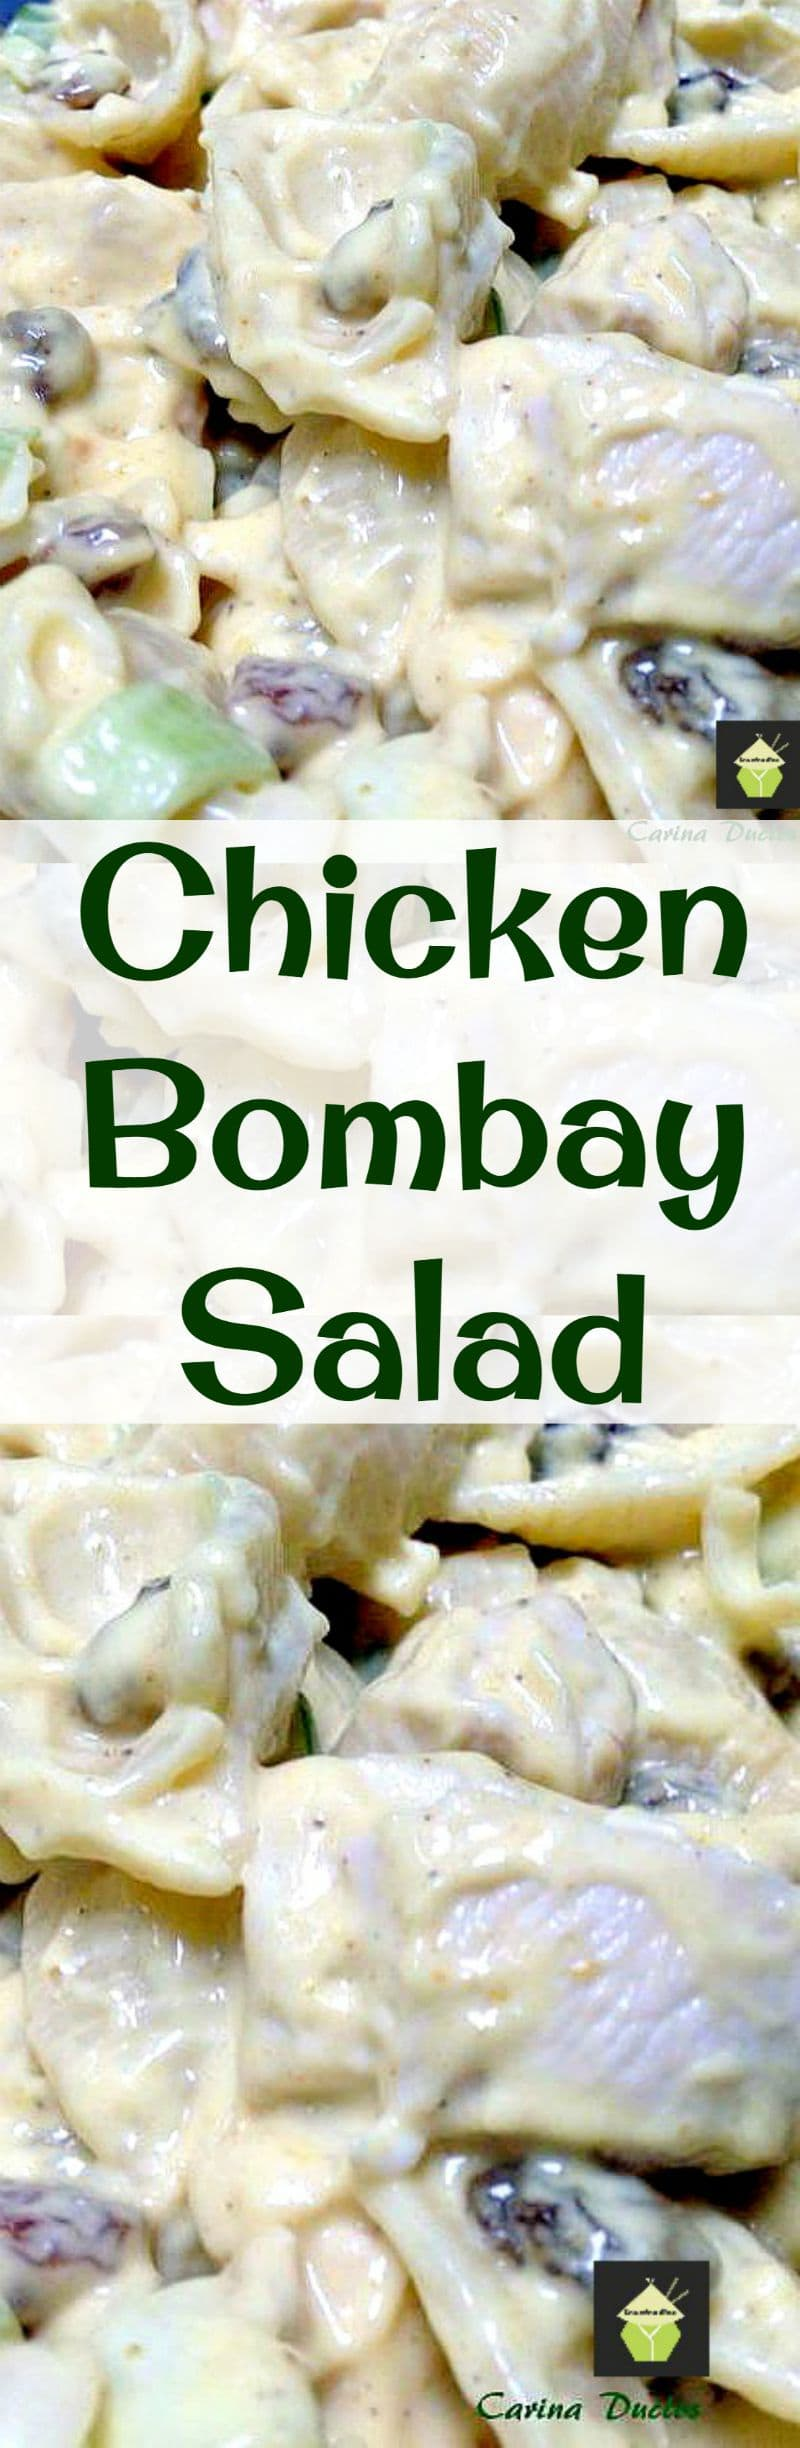 Chicken Bombay Salad A delicious, popular salad, easy and quick too!